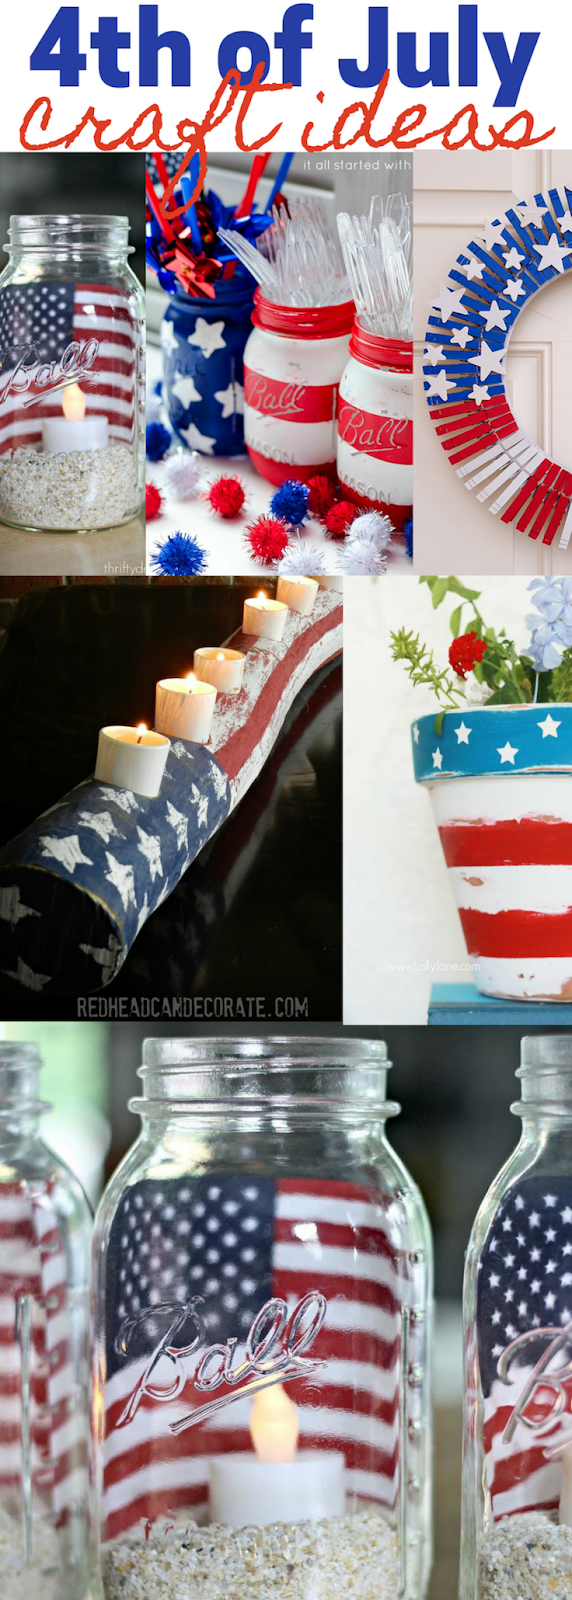 Farmhouse and Rustic 4th of July Crafts and Decorations